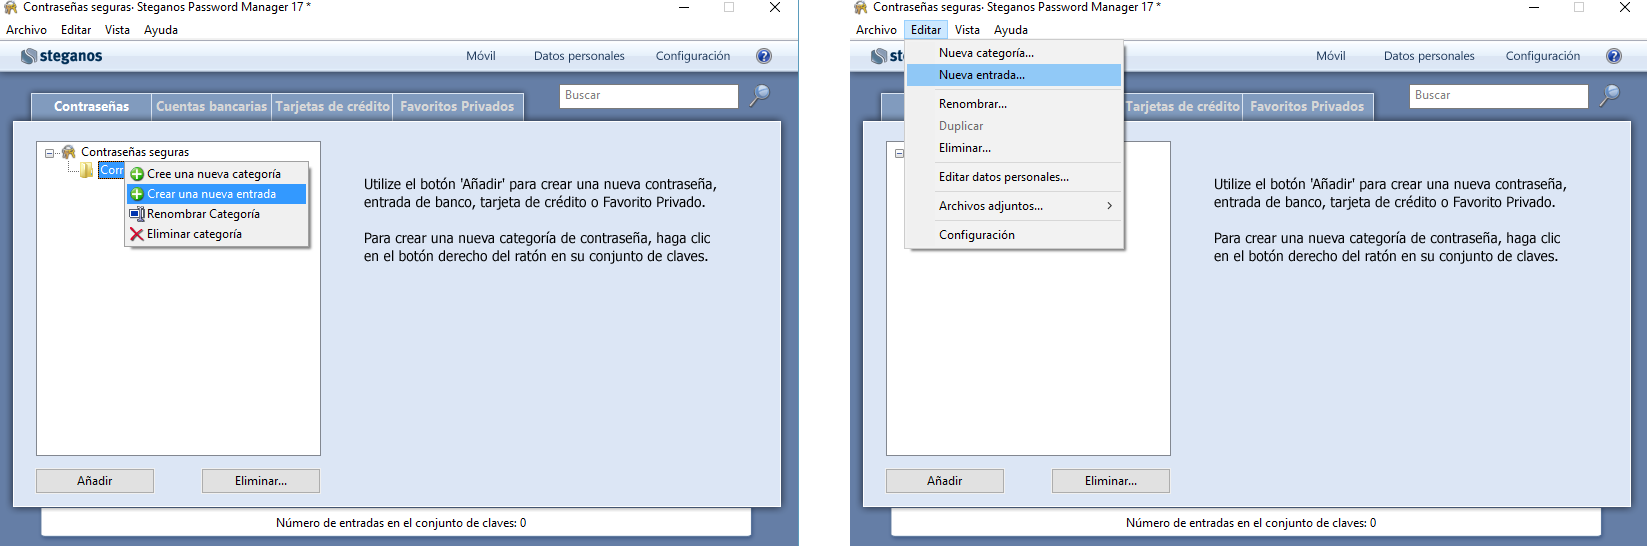 Acceso seguro y privado al Yahoo! Mail con Password Manager